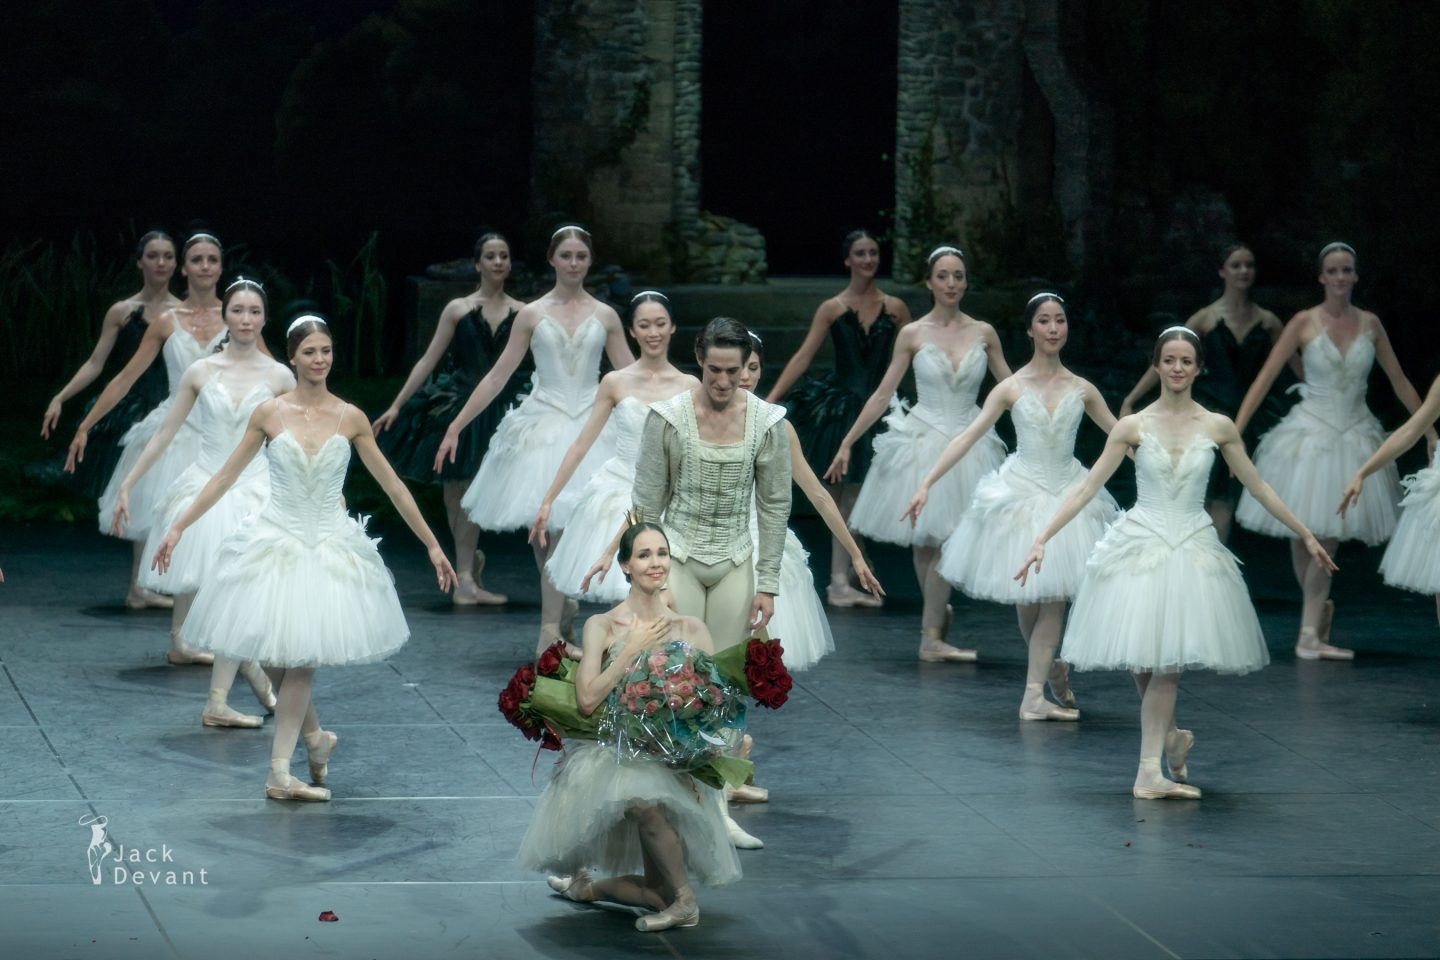 Viktorina Kapitonova last dance as Odette / Odile with Ballett Zürich last bow on her knee